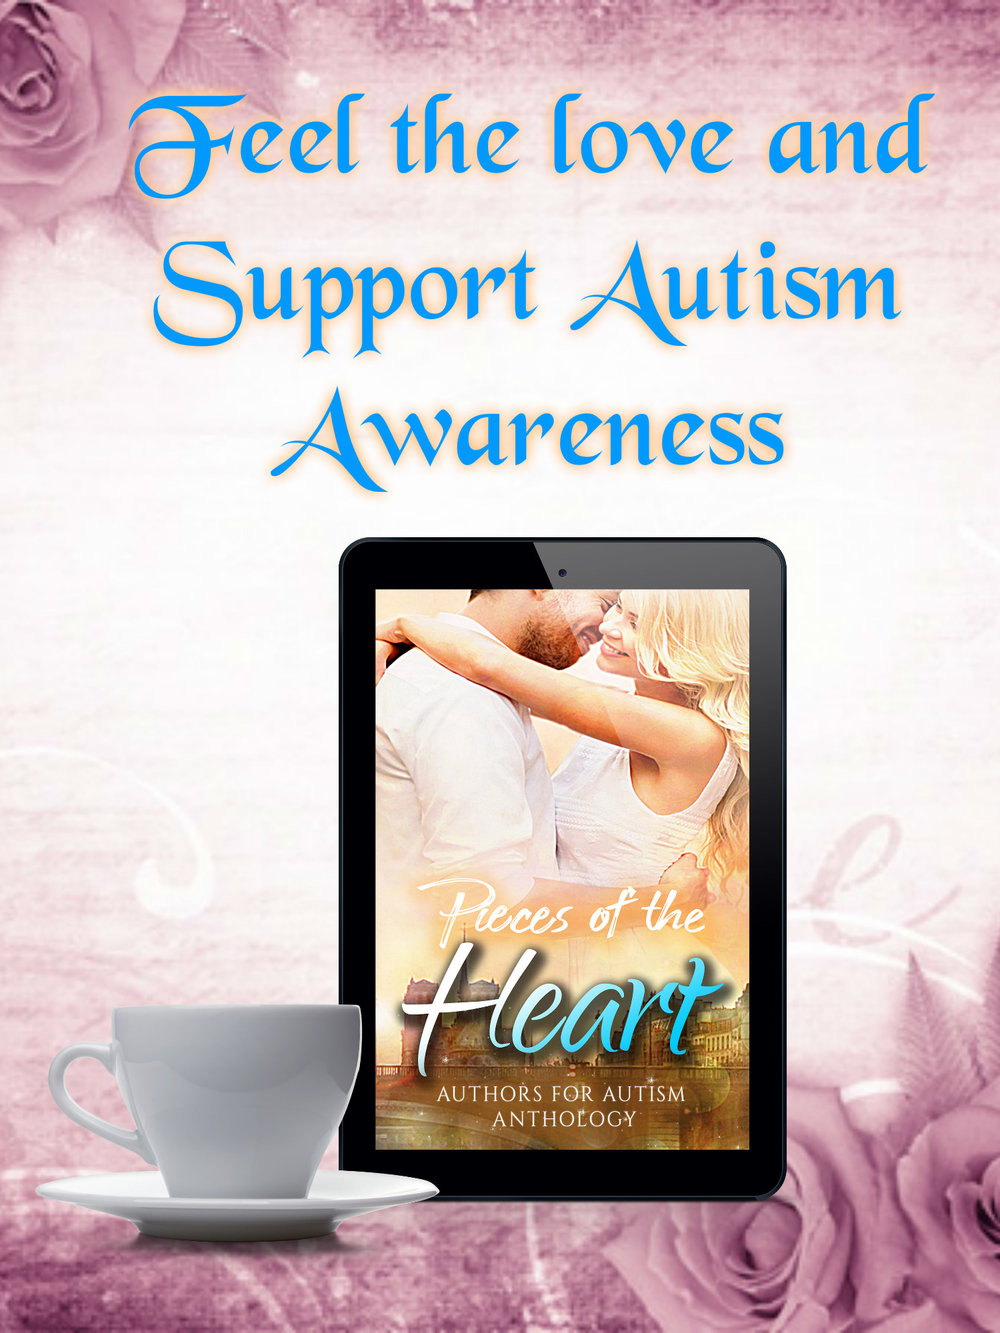 Pieces of the Heart collaboration written by some amazing authors. #AutismSpeaks #AutismAwareness Fifteen incredible authors have come together with stories of love, passion, pain, and triumph in support of Autism research. Pieces of the Heart by Authors for Autism is a collection of romance short stories of various genre and styles. Contemporary, fantasy, comedy, historical, and drama, all combined in an assembly of sweet short reads to fill your heart with emotion. All of the proceeds of every sold copy of Pieces of the Heart will be donated toward Autism Research. This is a cause near and dear to every author involved in this project, and they are all excited to share these beautiful stories with all of you. Maggie Anderson- Guilty Pleasures Shannon Bell- Not Your Average Prince Charming Robbie Cox- Another Page Chrys Fey- Cancer Can't Joan Hazel- Show, Don't Tell Violet Howe- Breaking the Promise Brenda Hunt- A Love for Sarah Sam J D Hunt- Nicco the Eternal Elaine Kaye- All Aboard Tamsyn L. Key- Hunted Michelle Louise- The Will to Love Again Tara Ann Moore- Marigold J. Nichole Parkins - The Girl in the Well Cherron Riser- Author- Through Frozen Shadows Miranda Shanklin- I Got Scared